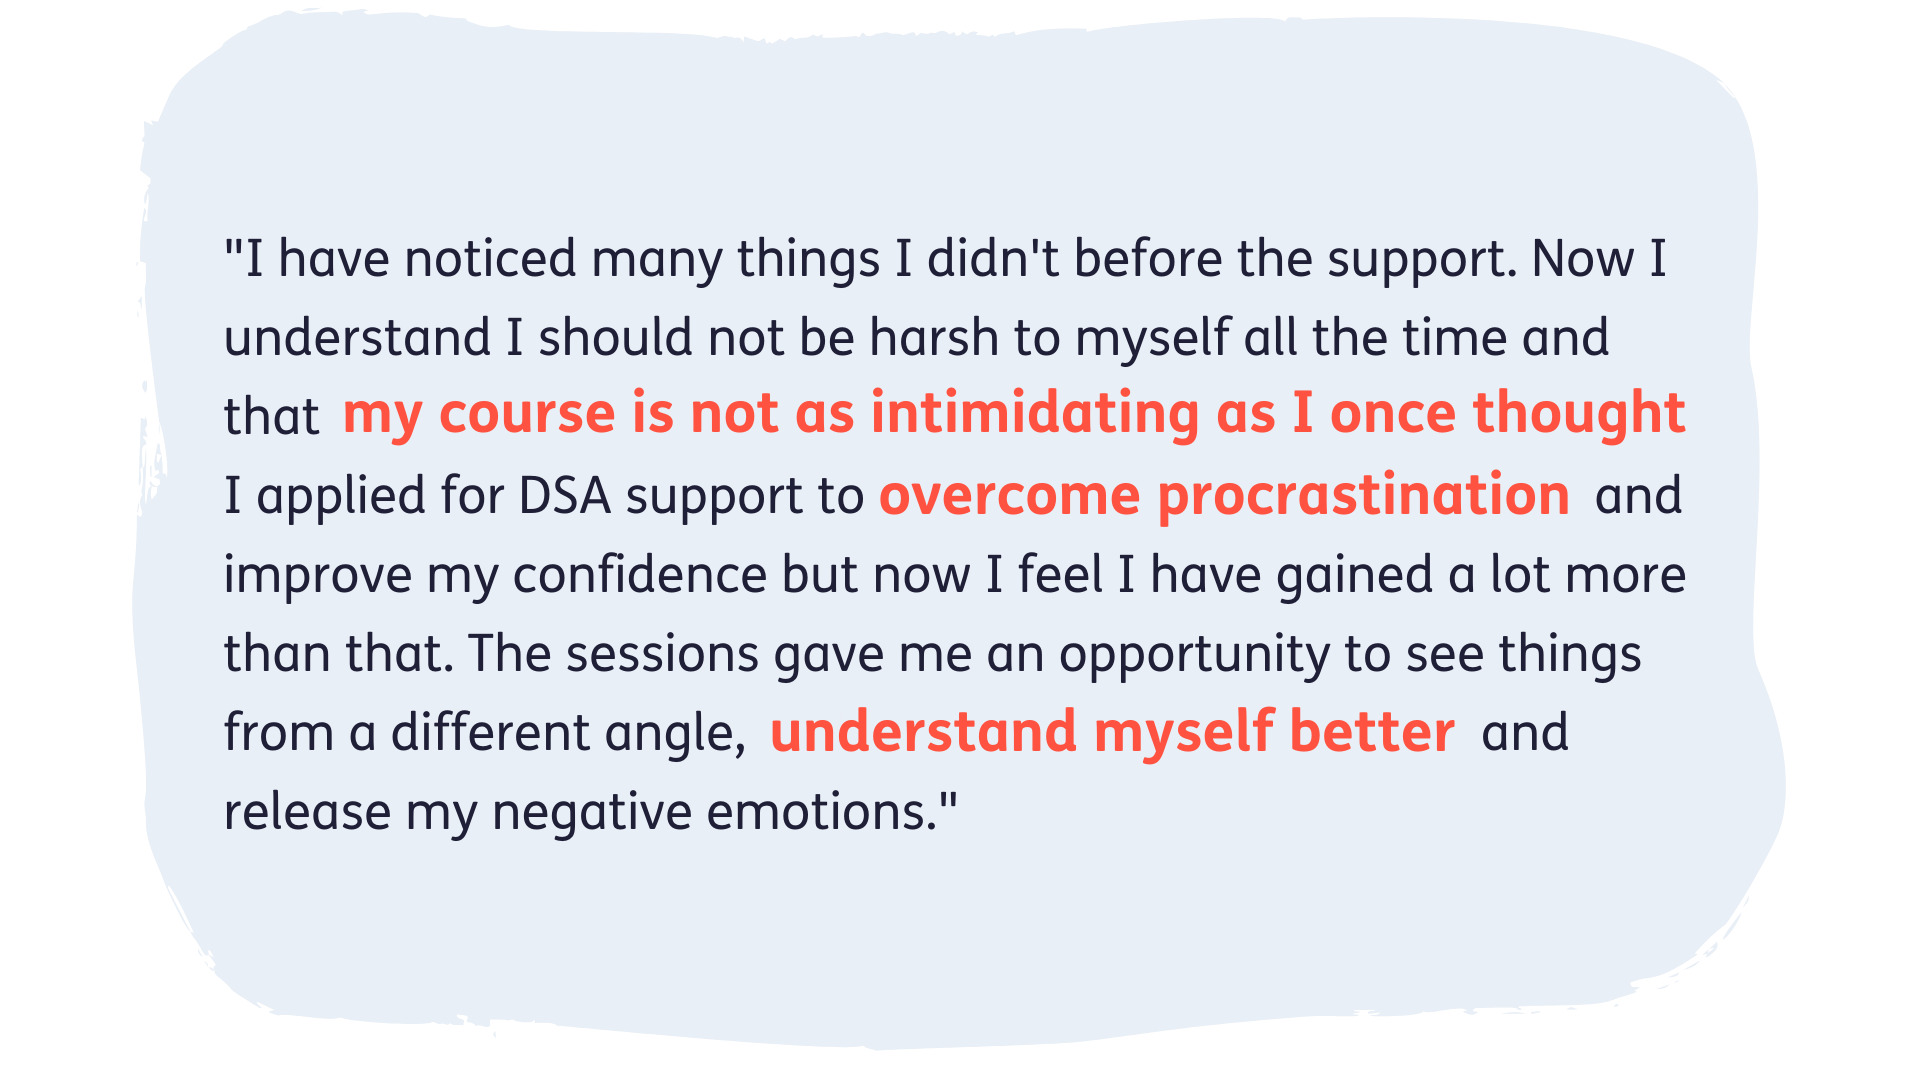 """""""I have noticed many things I didn't before the support. Now I understand I should not be harsh to myself all the time and that my course is not as intimidating as I once thought. I applied for DSA support to overcome procrastination and improve my confidence but now I feel I have gained a lot more than that. The sessions gave me an opportunity to see things from a different angle, understand myself better and release my negative emotions."""""""